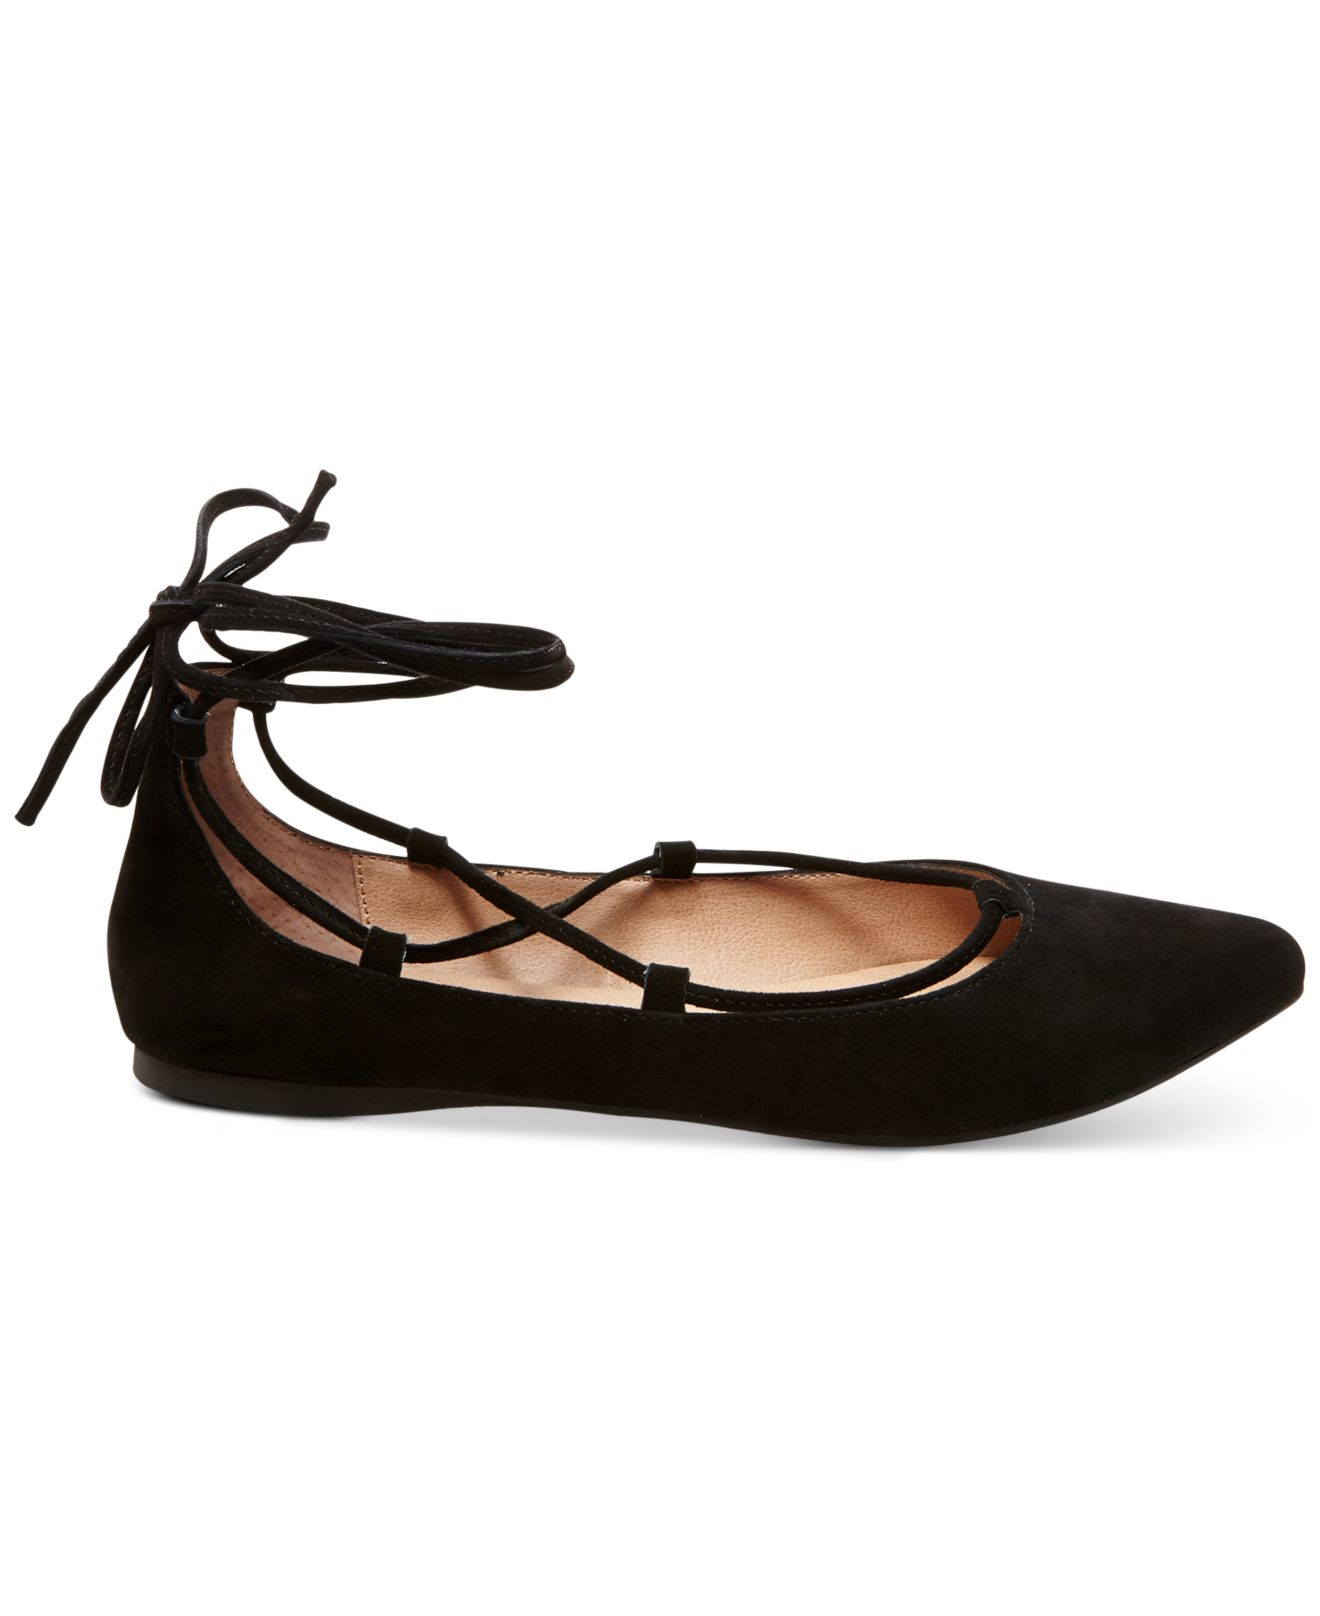 51de068033b Gallery. Previously sold at  Macy s · Women s Lace Up Flats ...